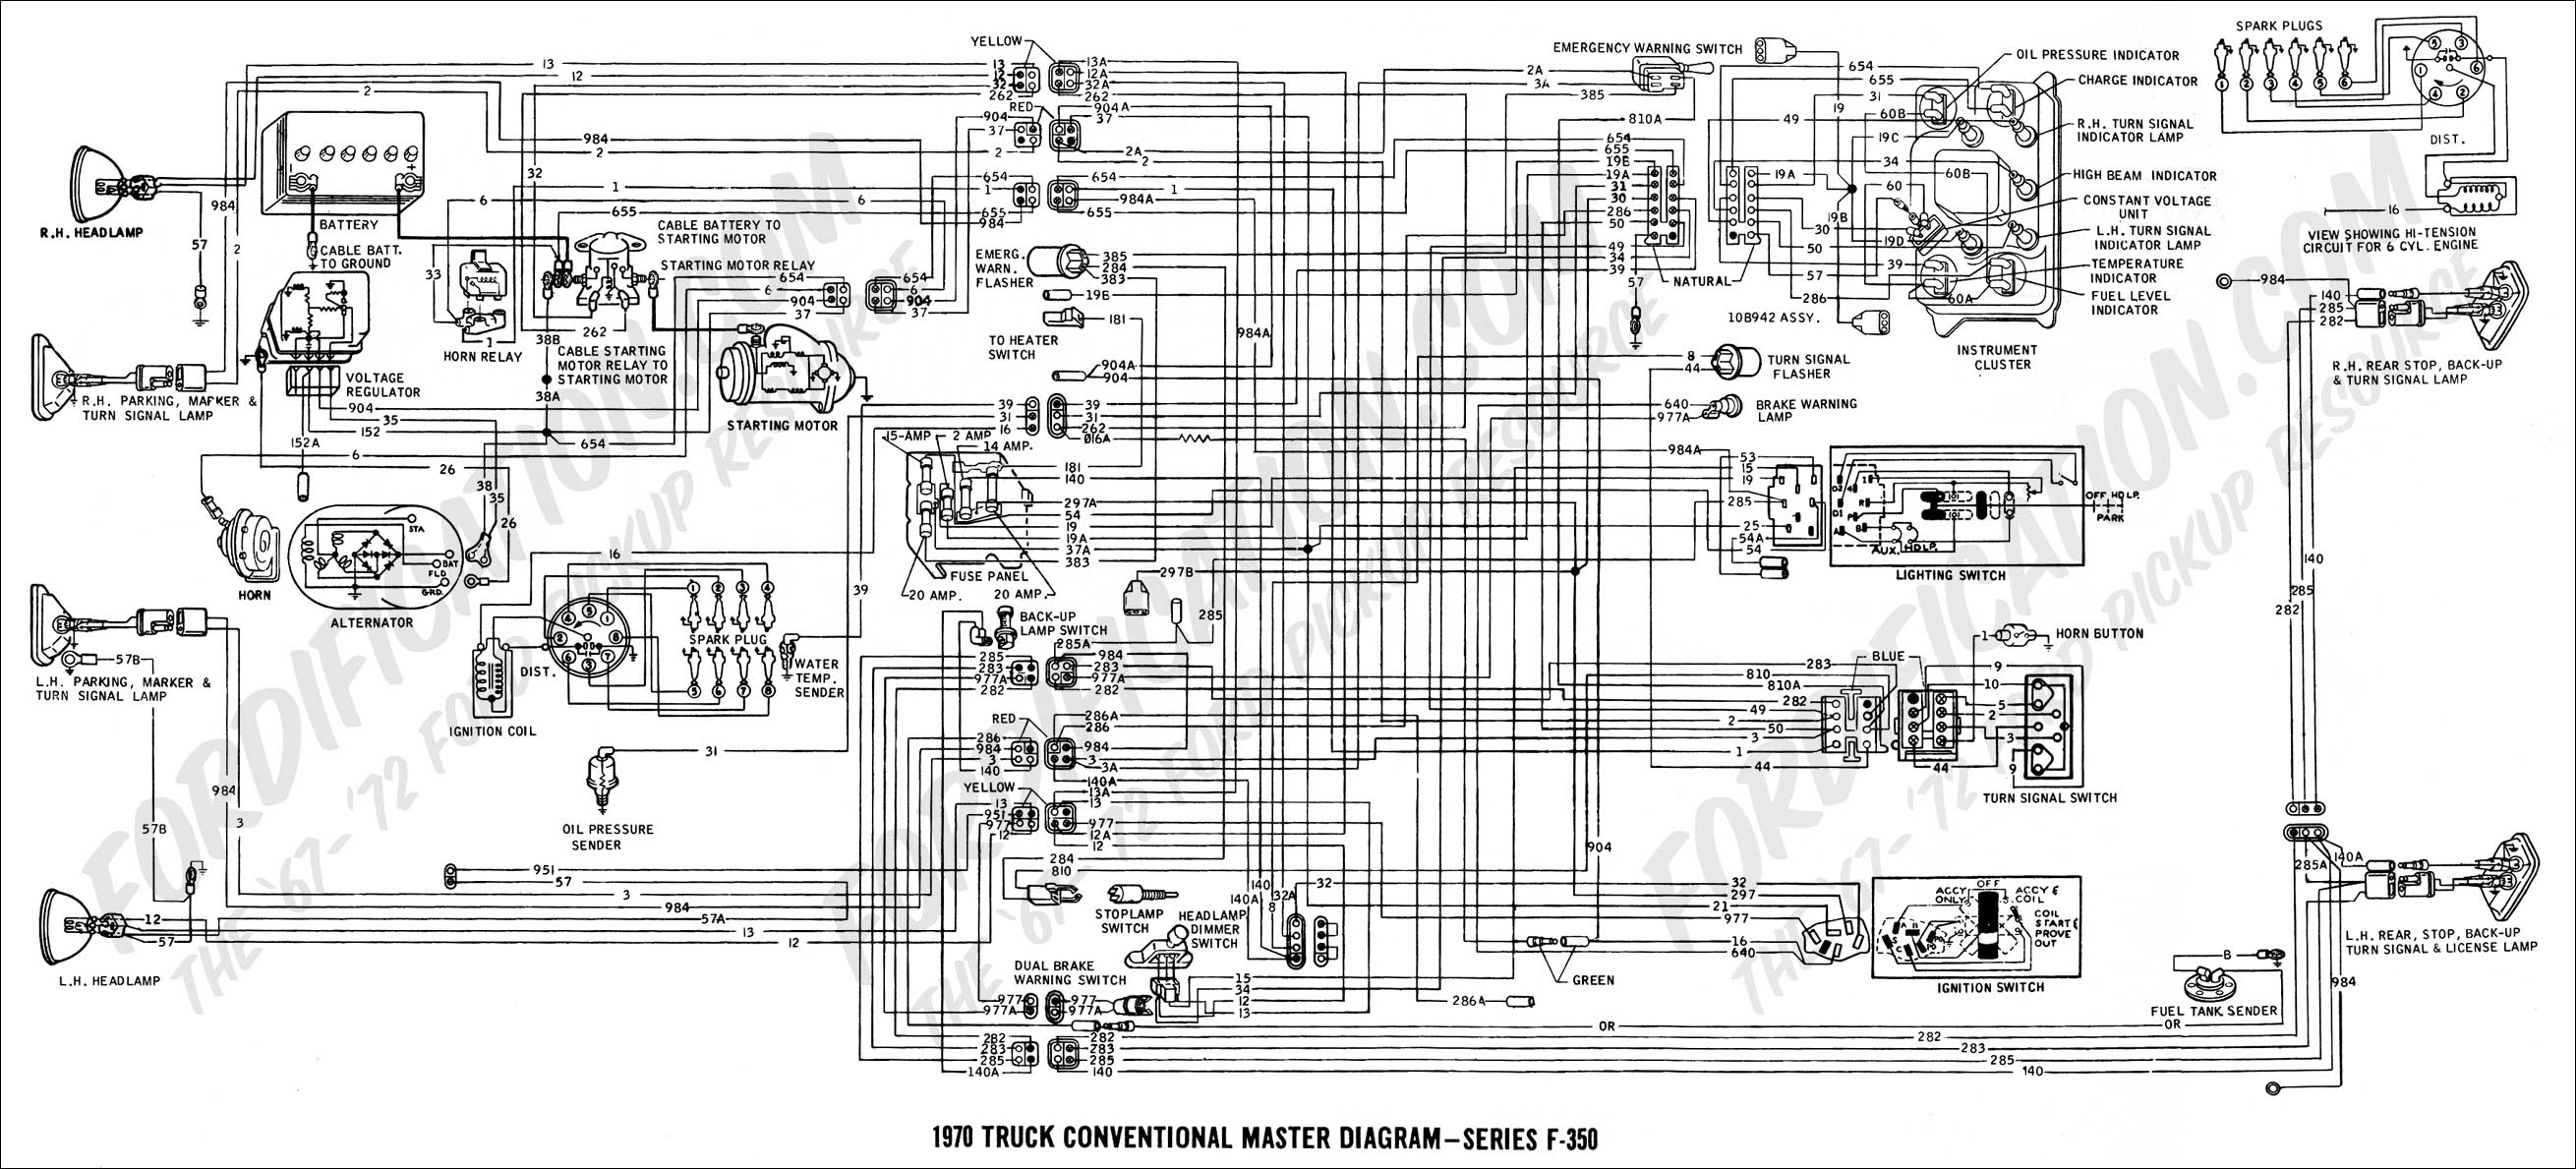 wiring diagram 70F350_master?zoom\\\=2.625\\\&resize\\\=665%2C302 schematic wiring diagram schematic wiring diagram of aircon narco 810 wiring diagram at creativeand.co